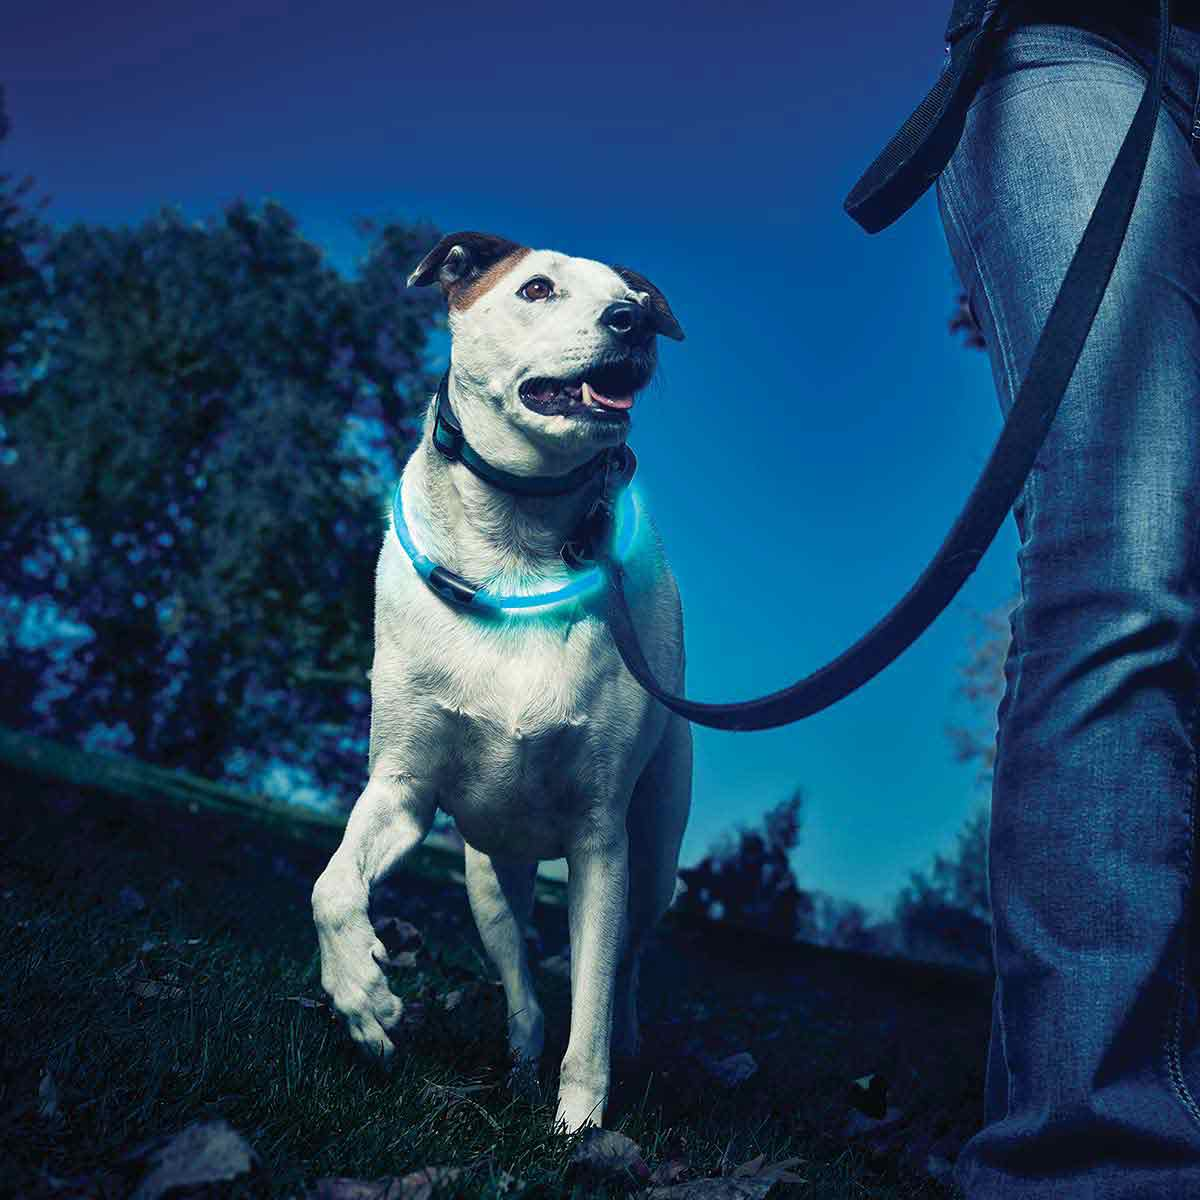 Nite Ize Nitehowl Blue LED Safety Necklace for Dogs at Night